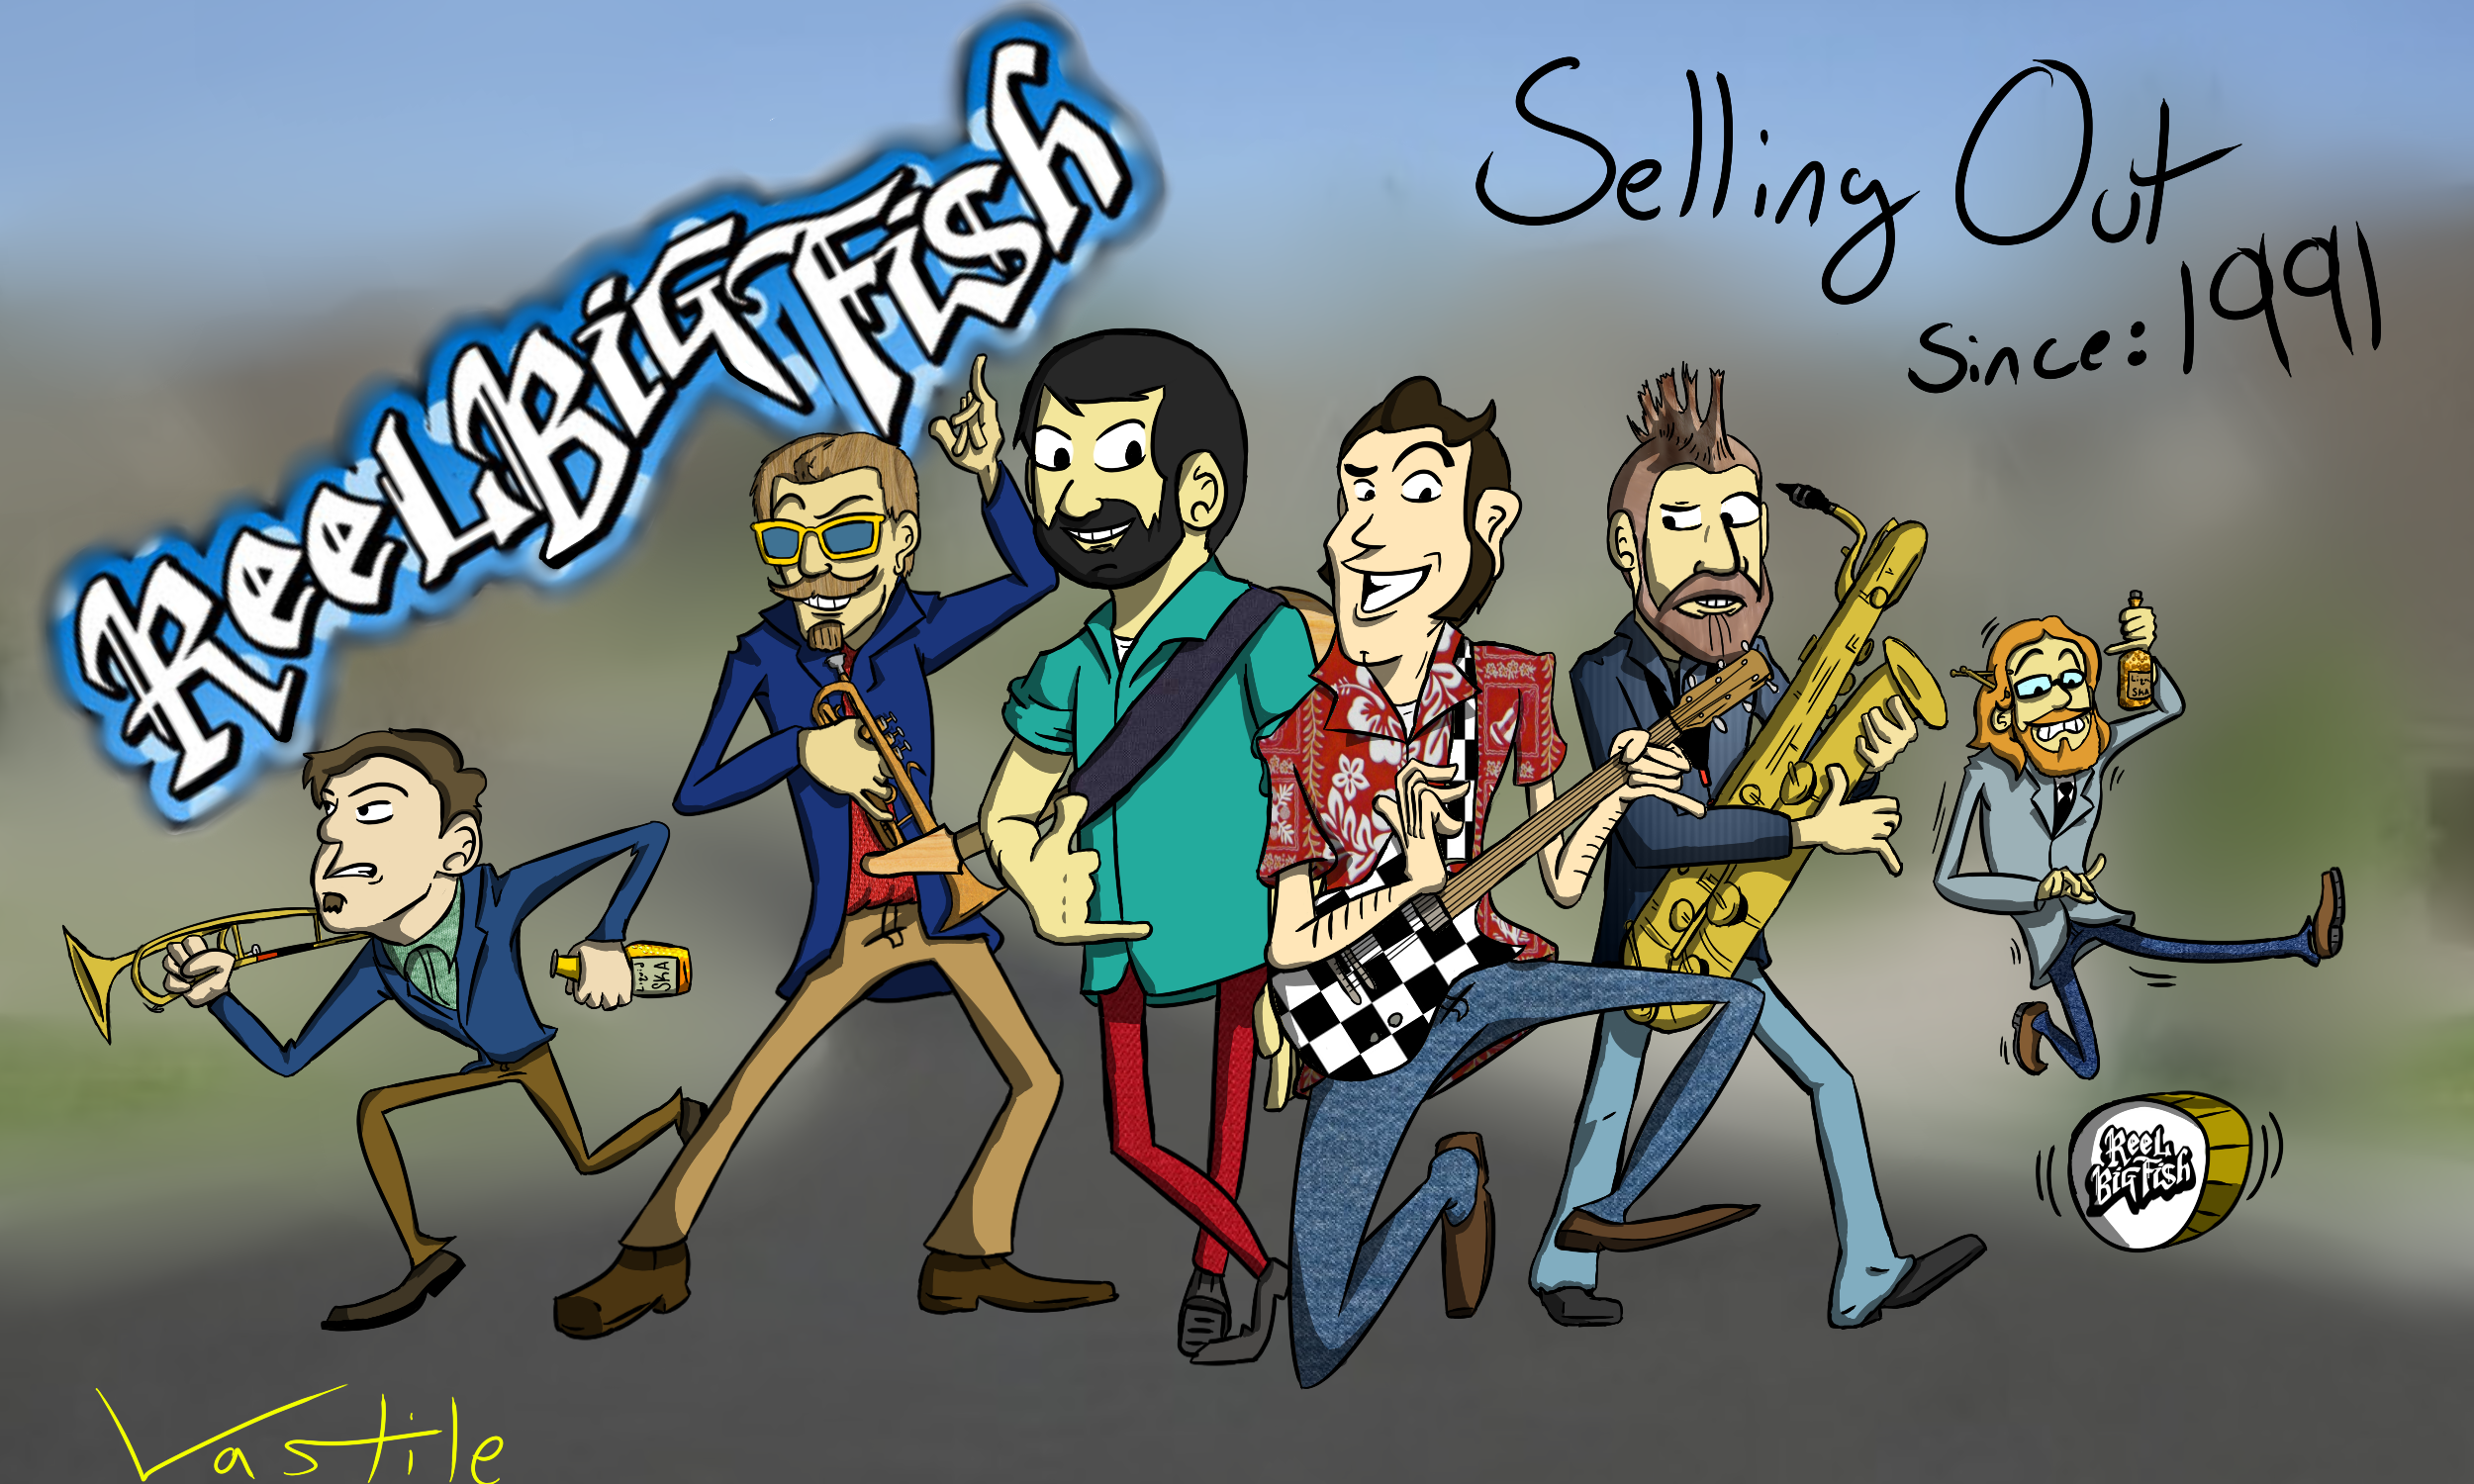 Reel big fish by vastile on newgrounds for Reel big fish